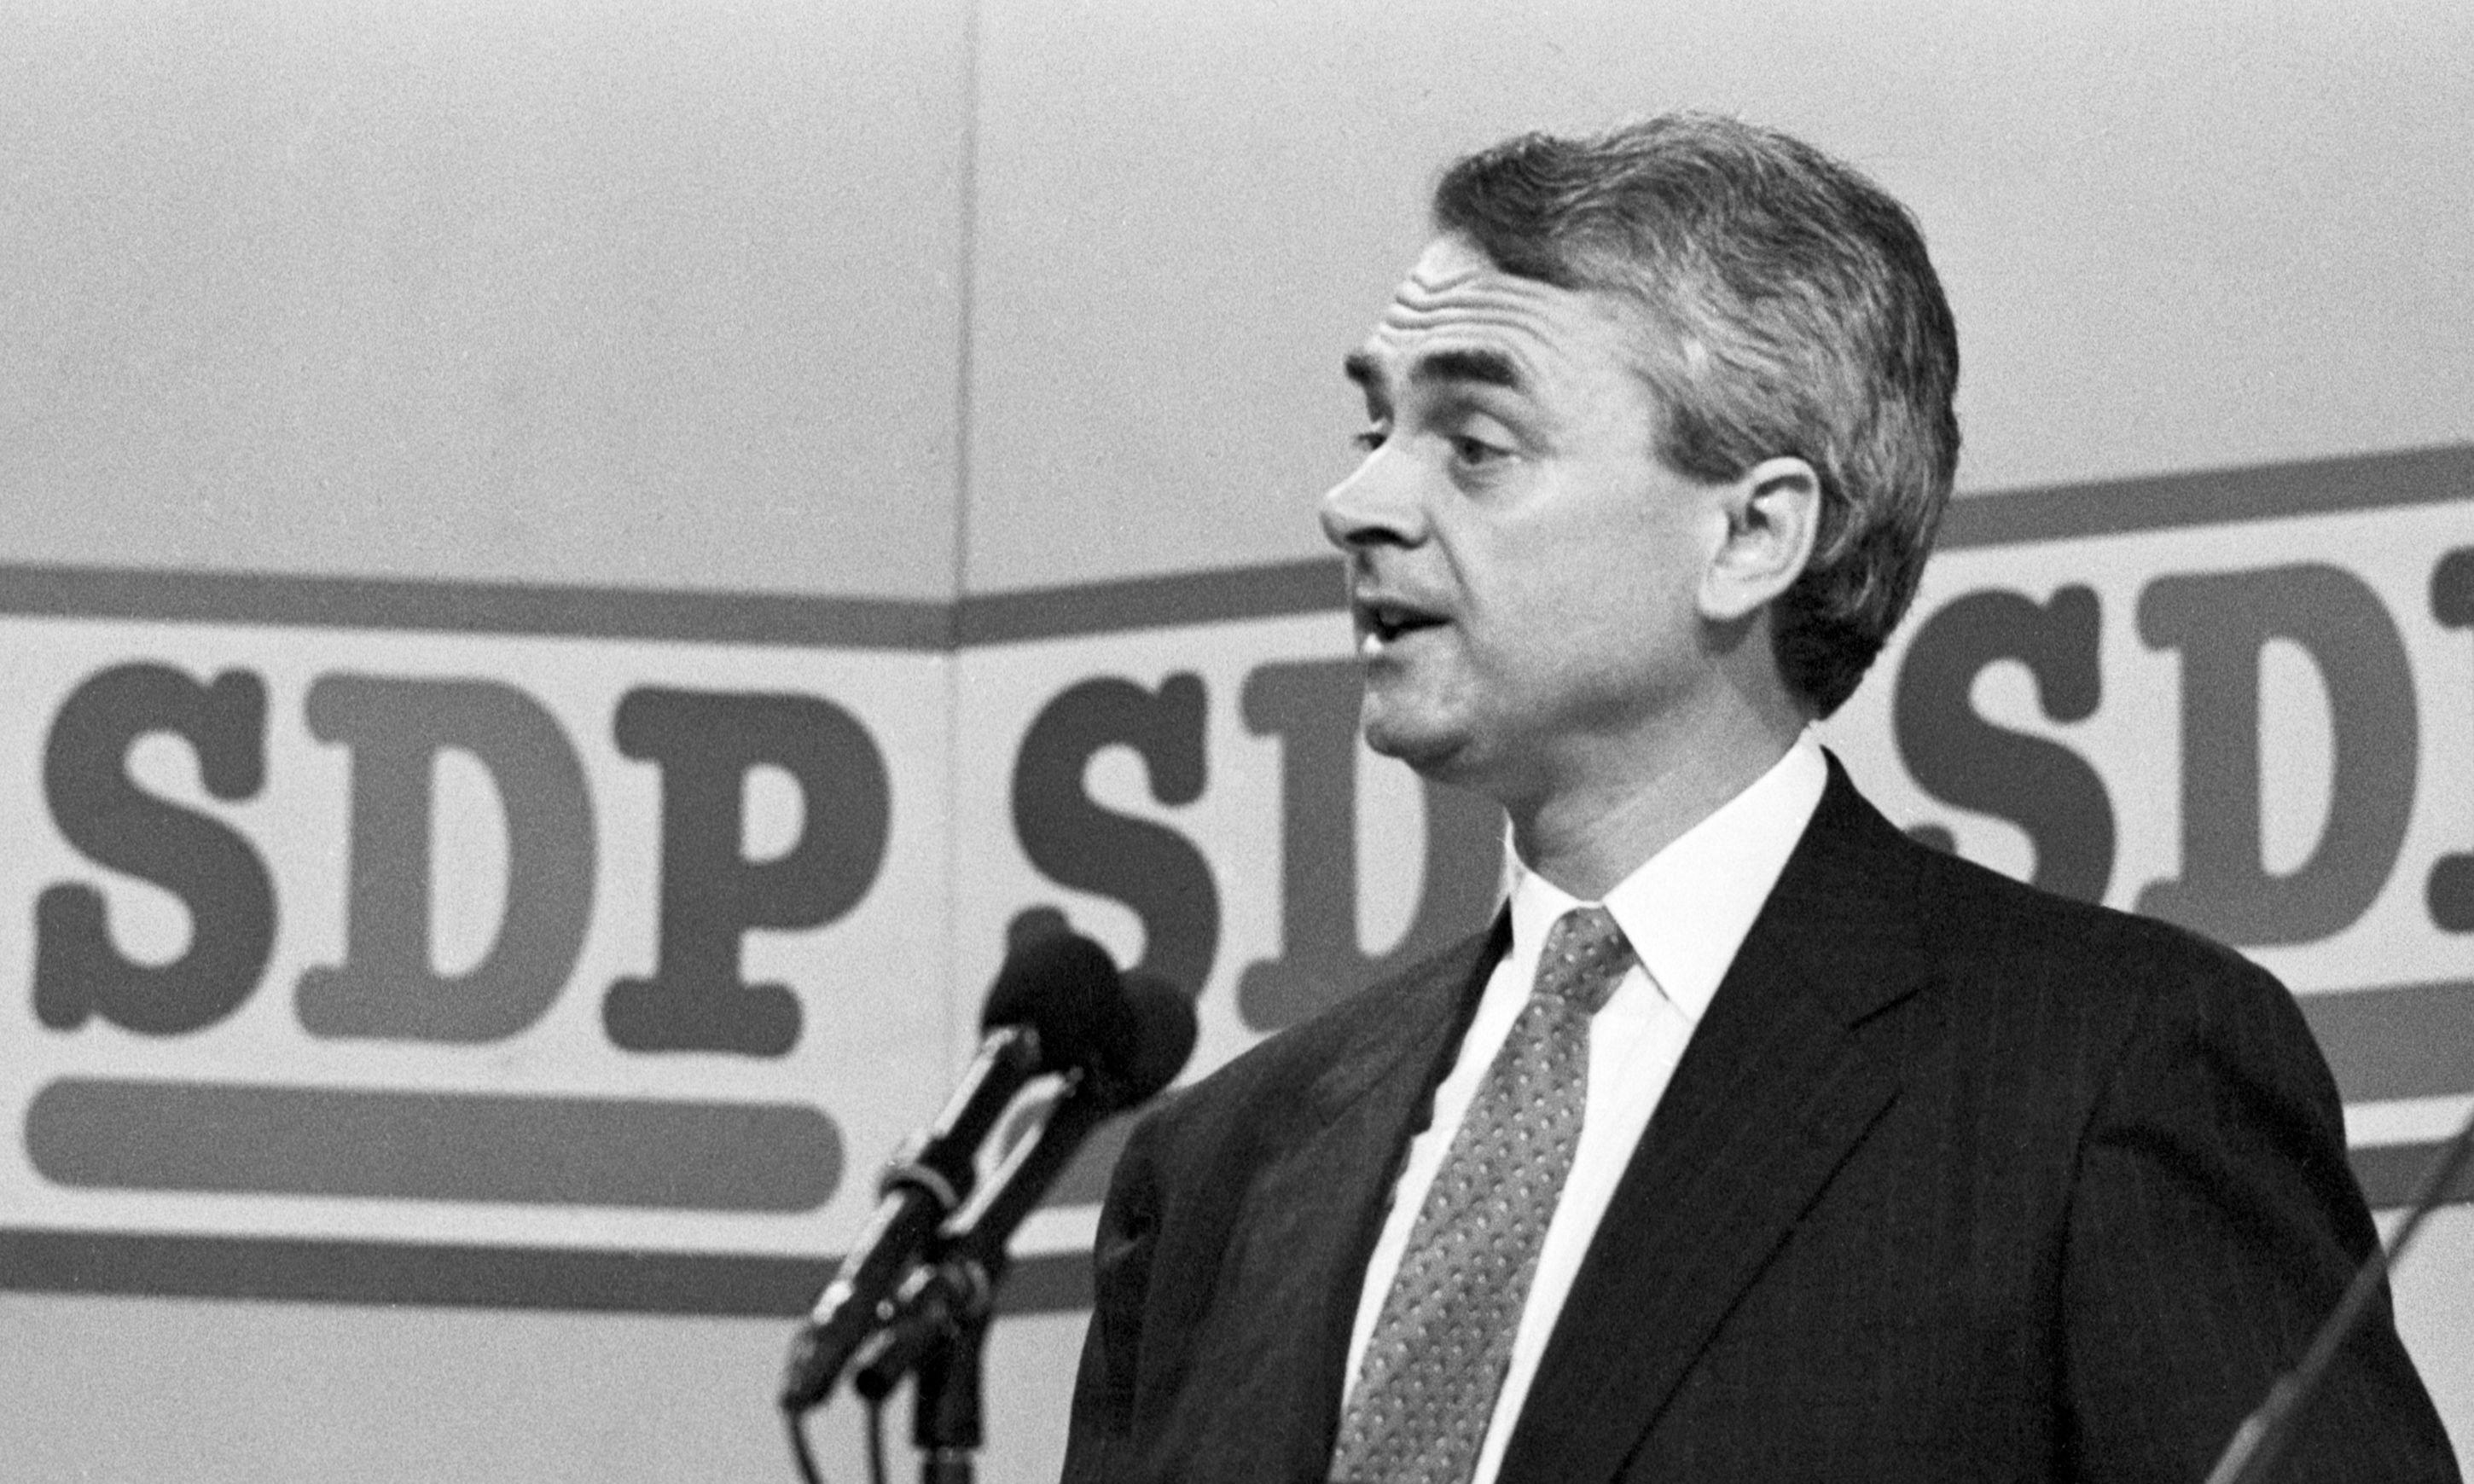 Former SDP leader and Lib Dem leader Robert Maclennan dies